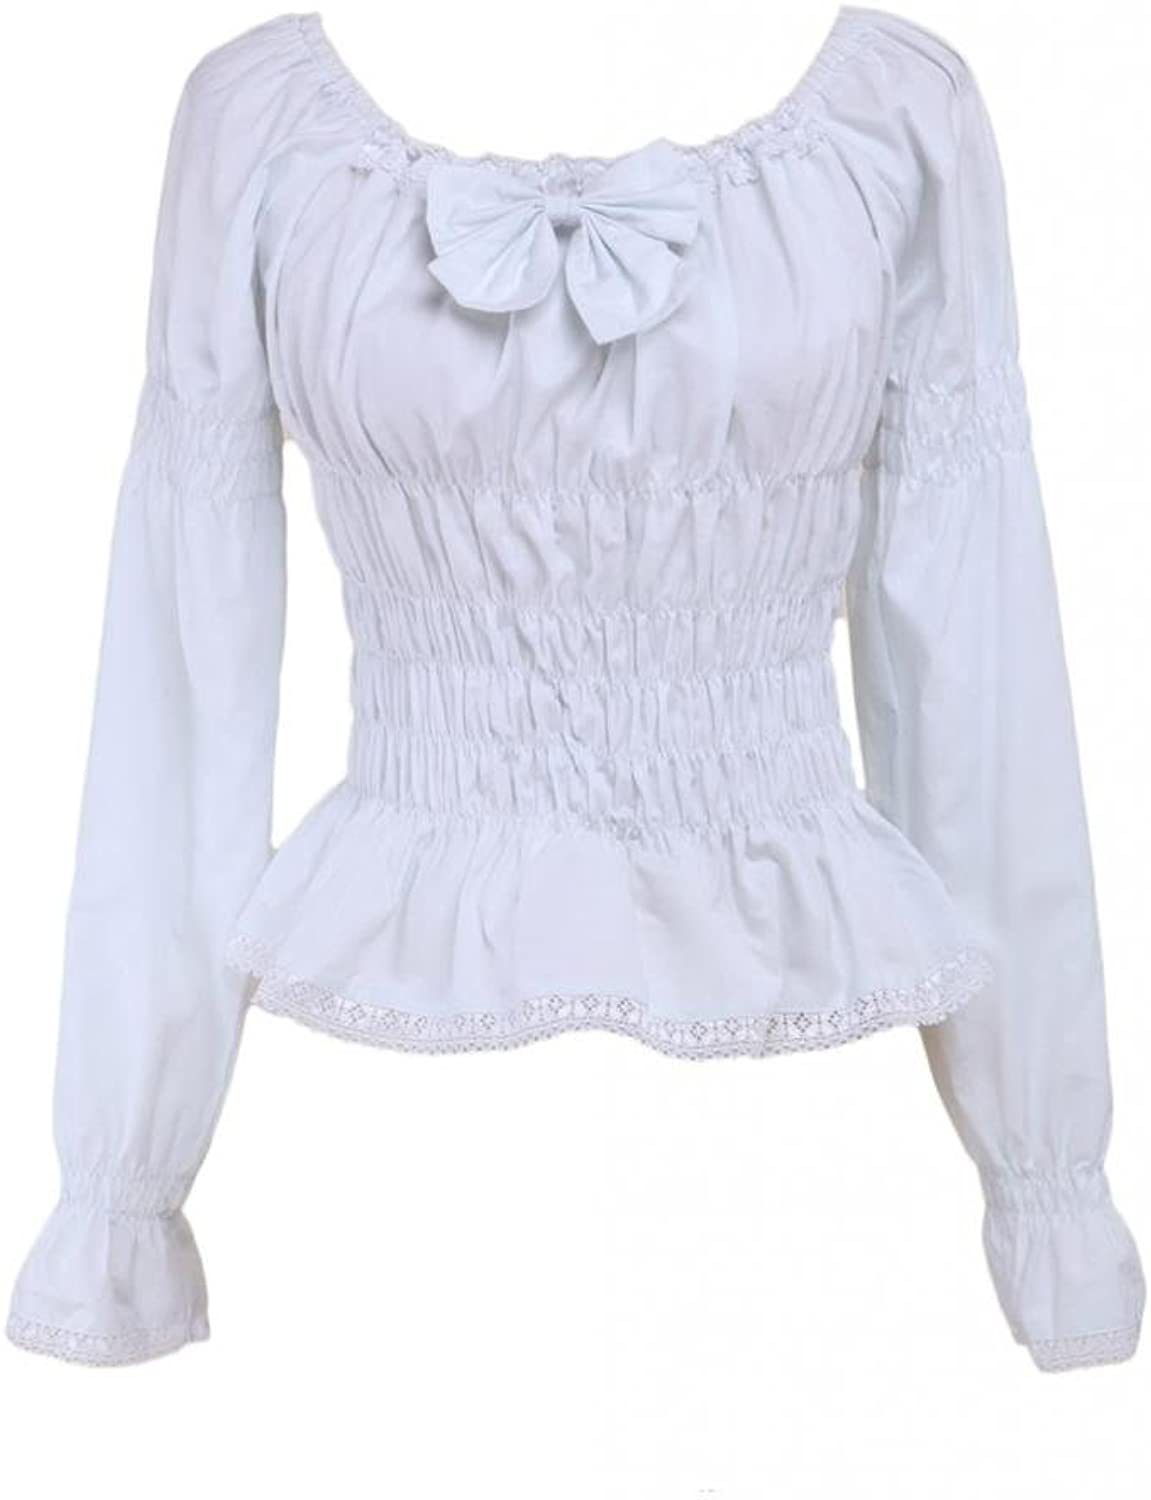 Hugme White Cotton Lolita Blouse Long Sleeves Shirring Bow Round Neck